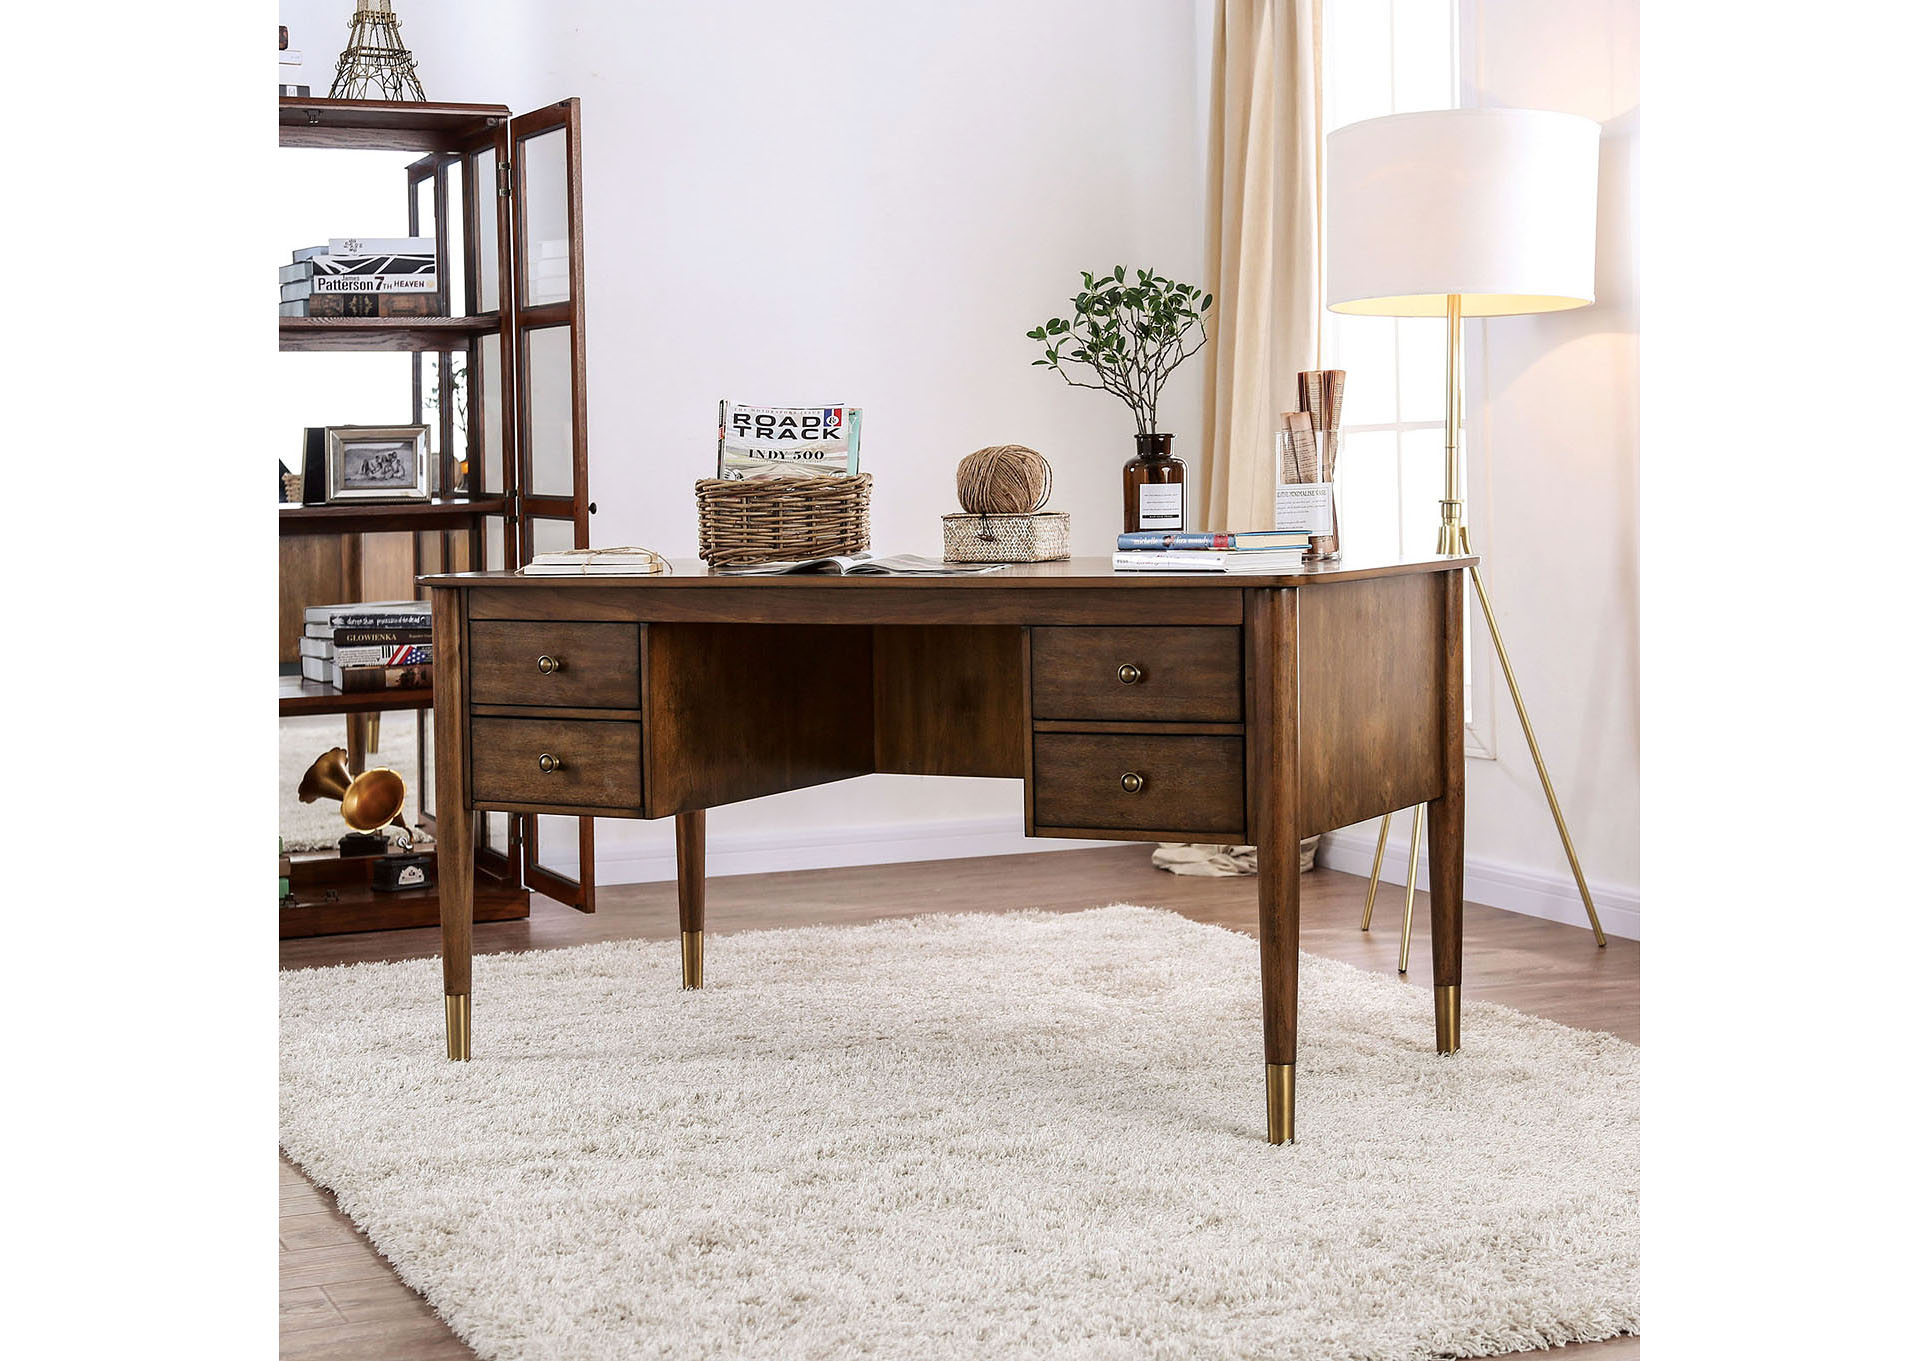 Squan Furniture Reliance Antique Oak Desk